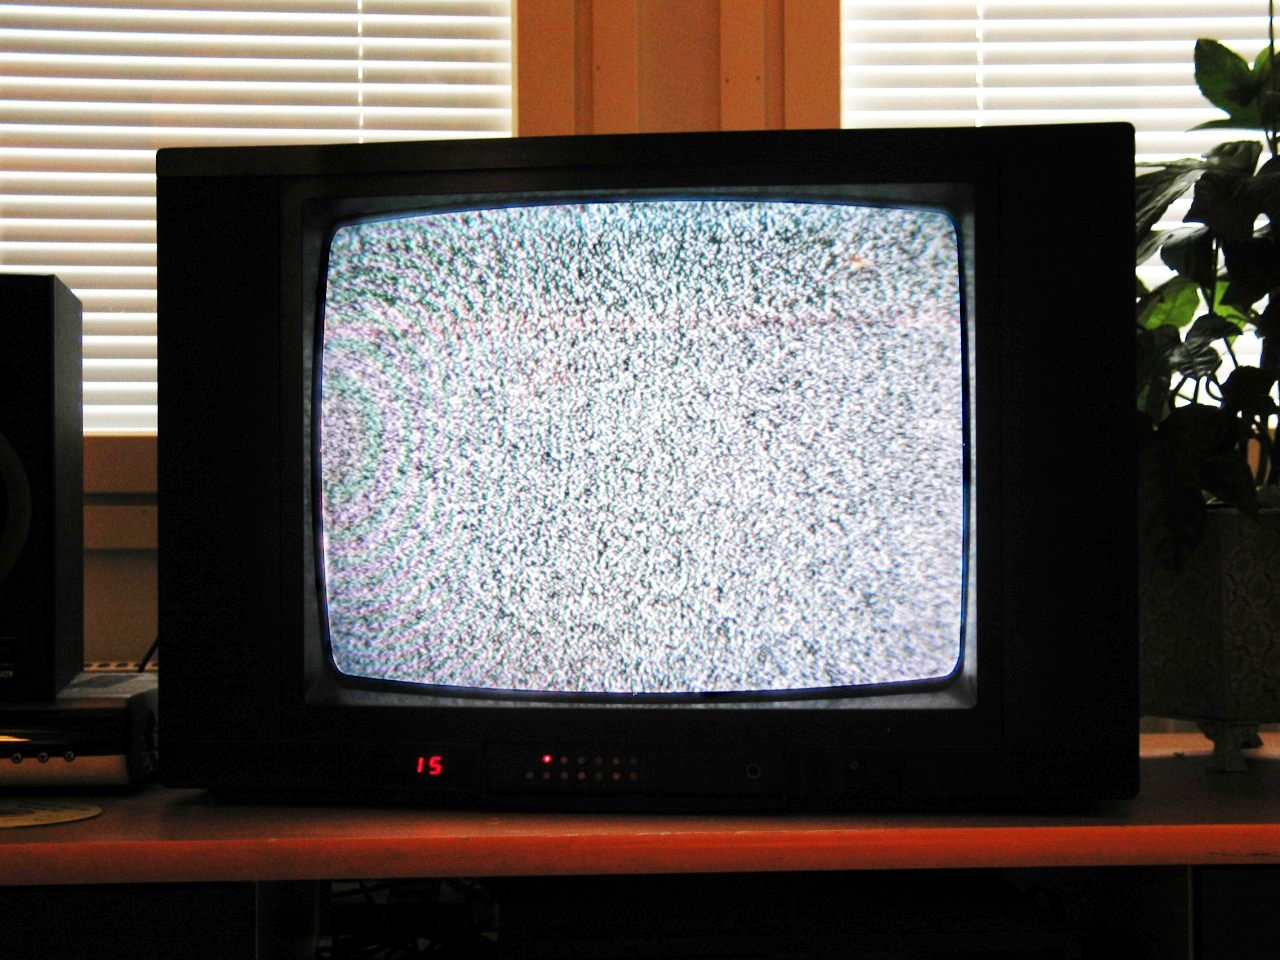 Color TV first came into households in the mid-1960's.